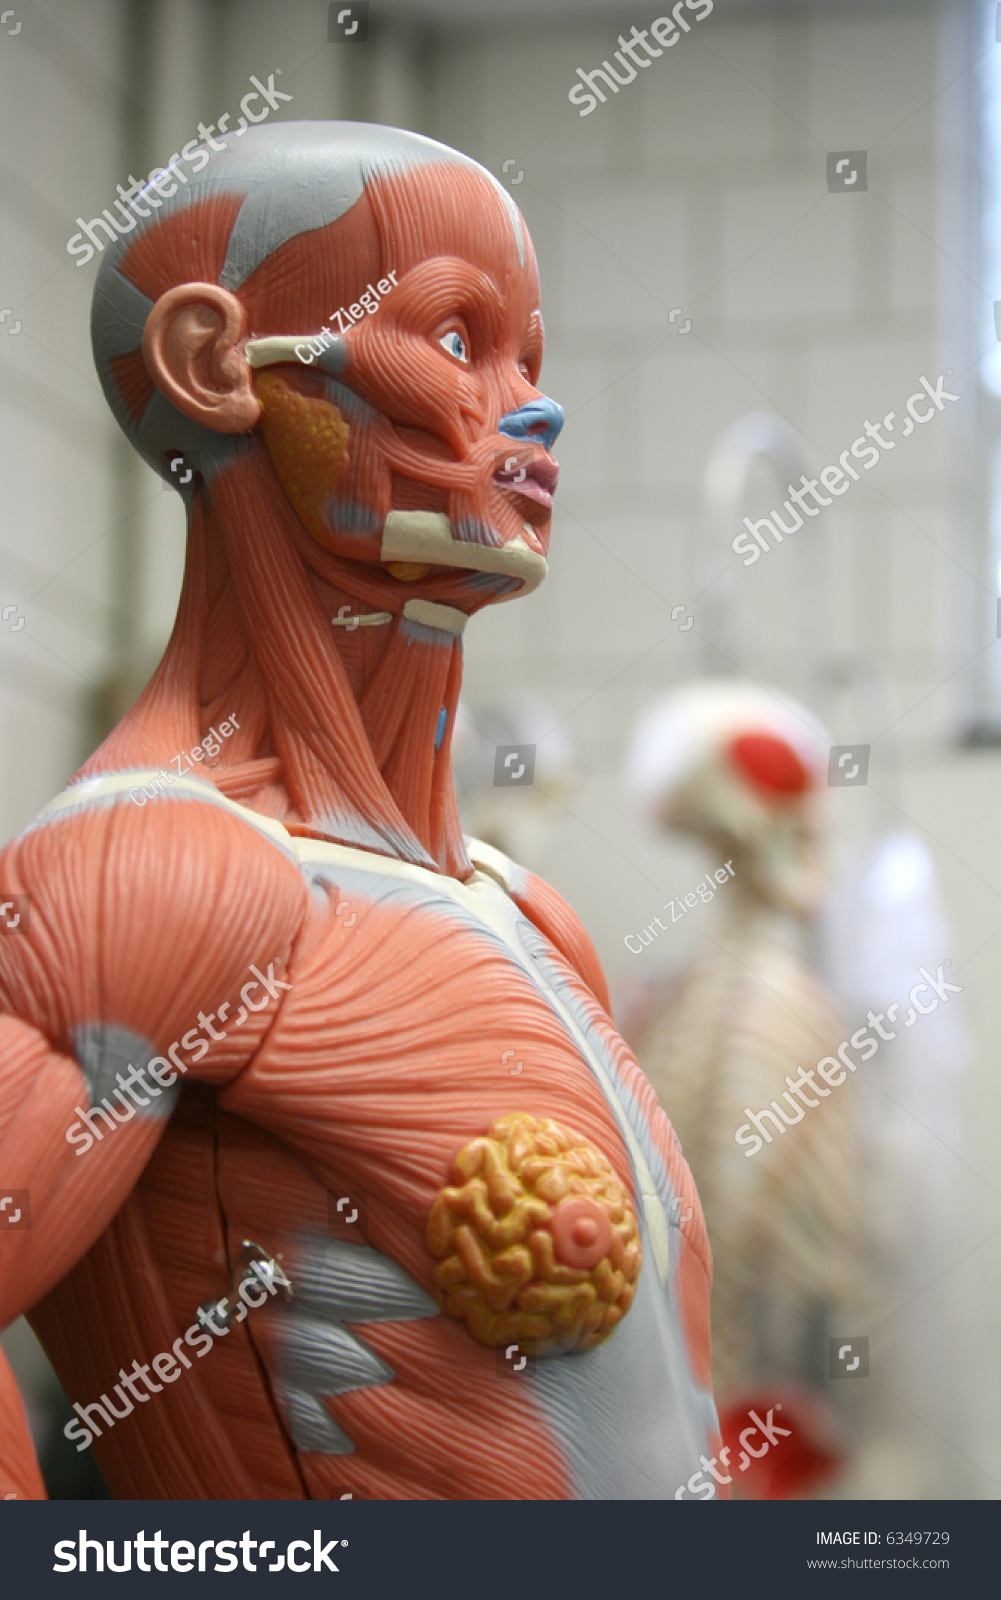 Awesome Human Anatomy Mannequin Photos Human Anatomy Images